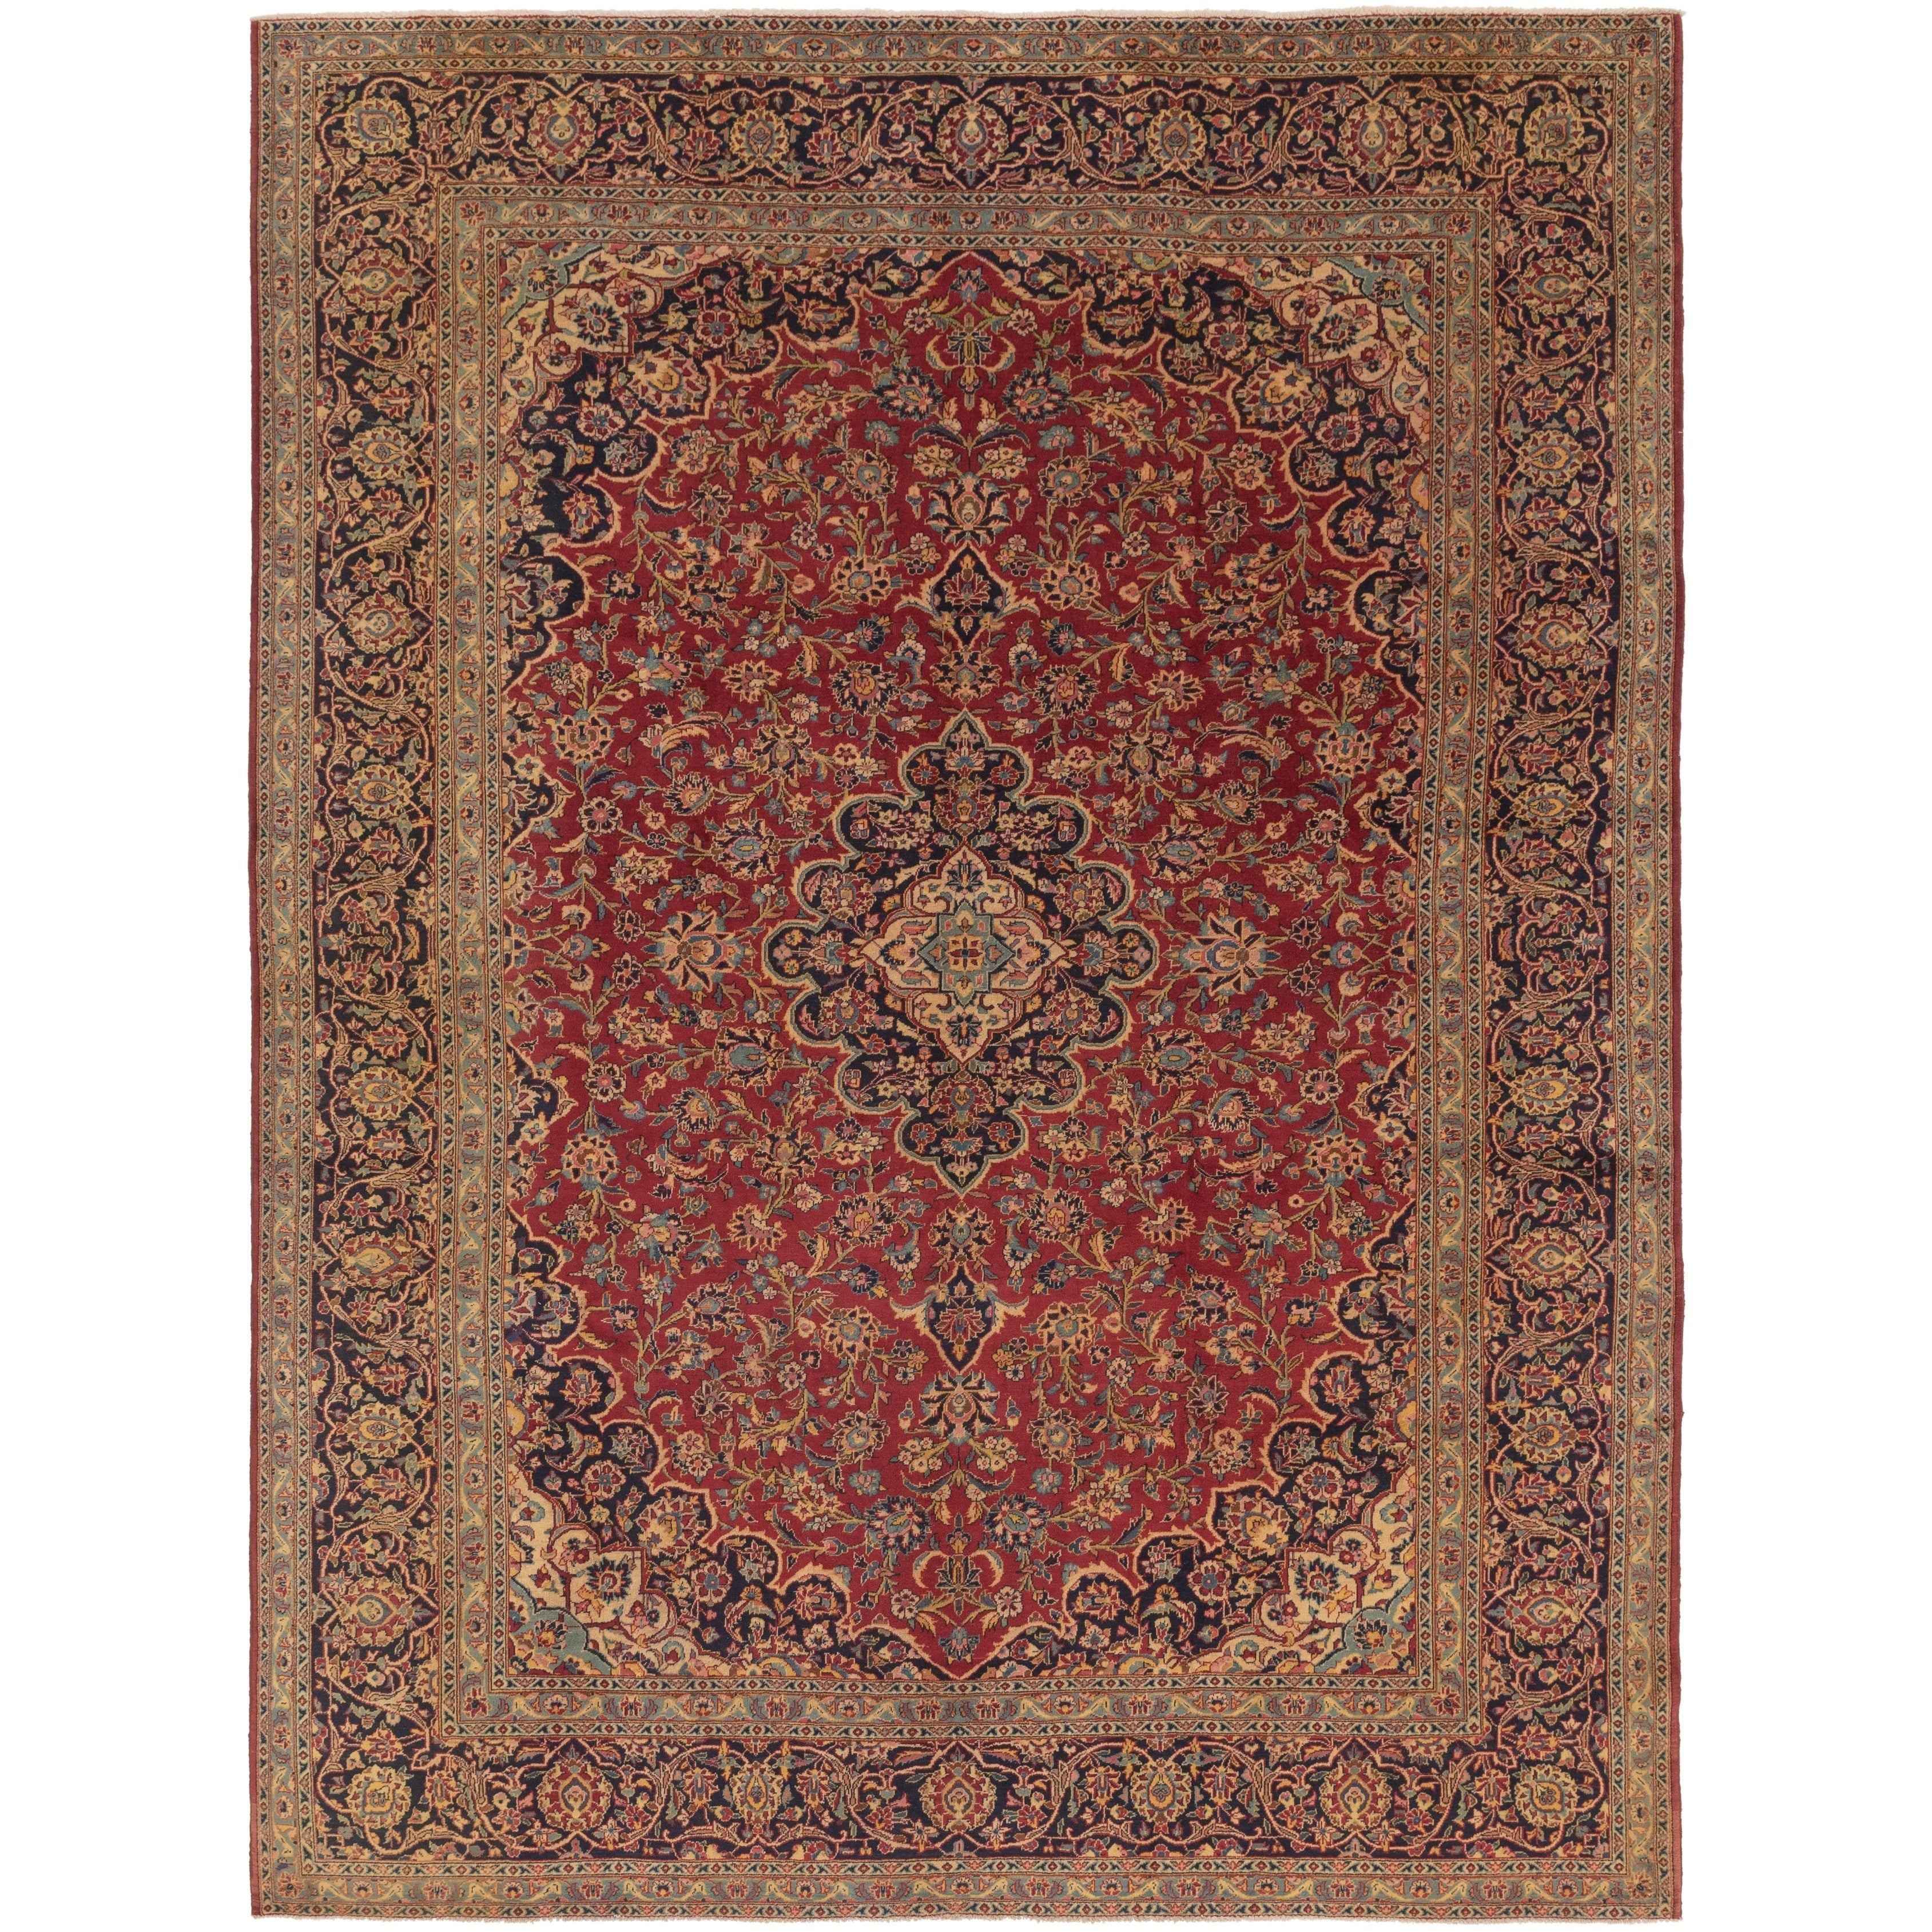 Hand Knotted Kashan Semi Antique Wool Area Rug - 10 x 13 (Red - 10 x 13)